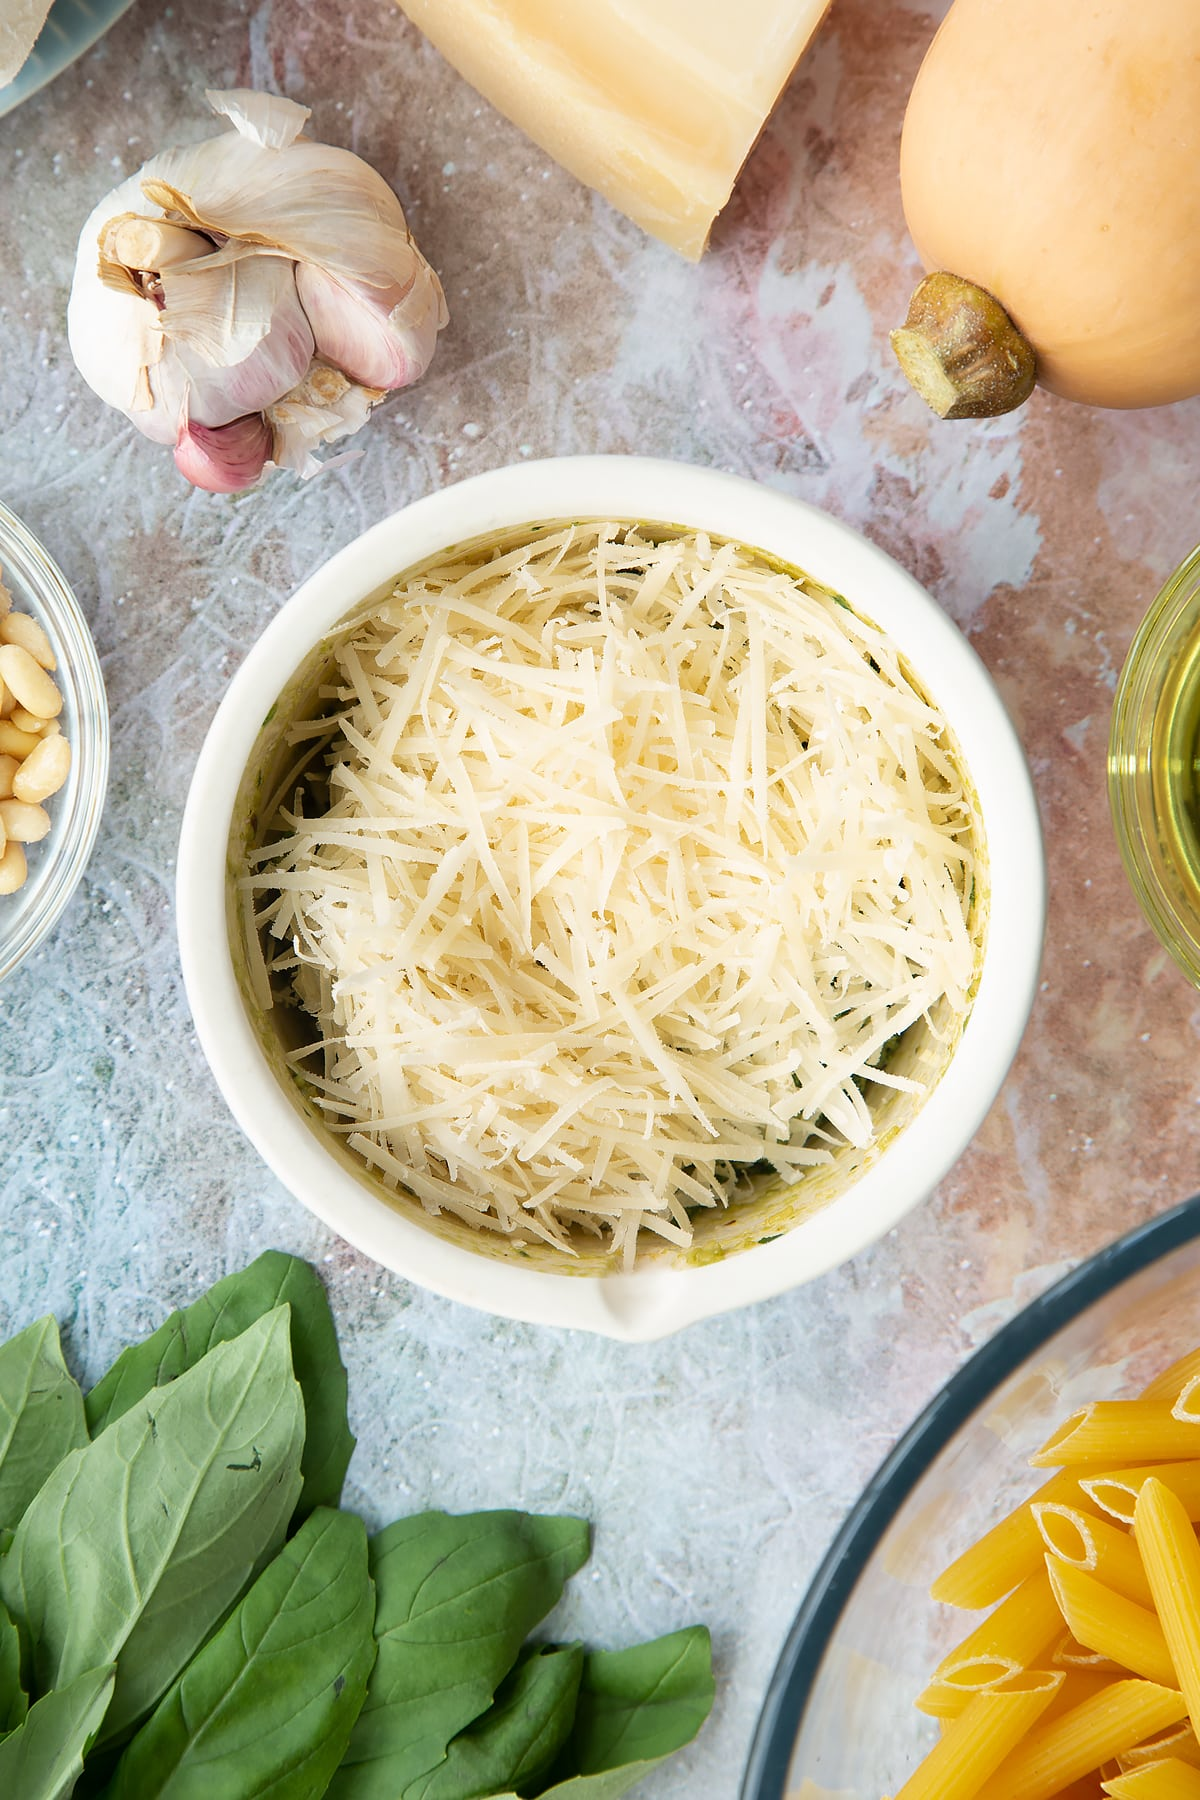 Toasted pine nuts, garlic, pepper and basil crushed in a small mortar with oil and Parmesan on top. Ingredients to make penne with butternut squash and goat cheese surround the mortar.